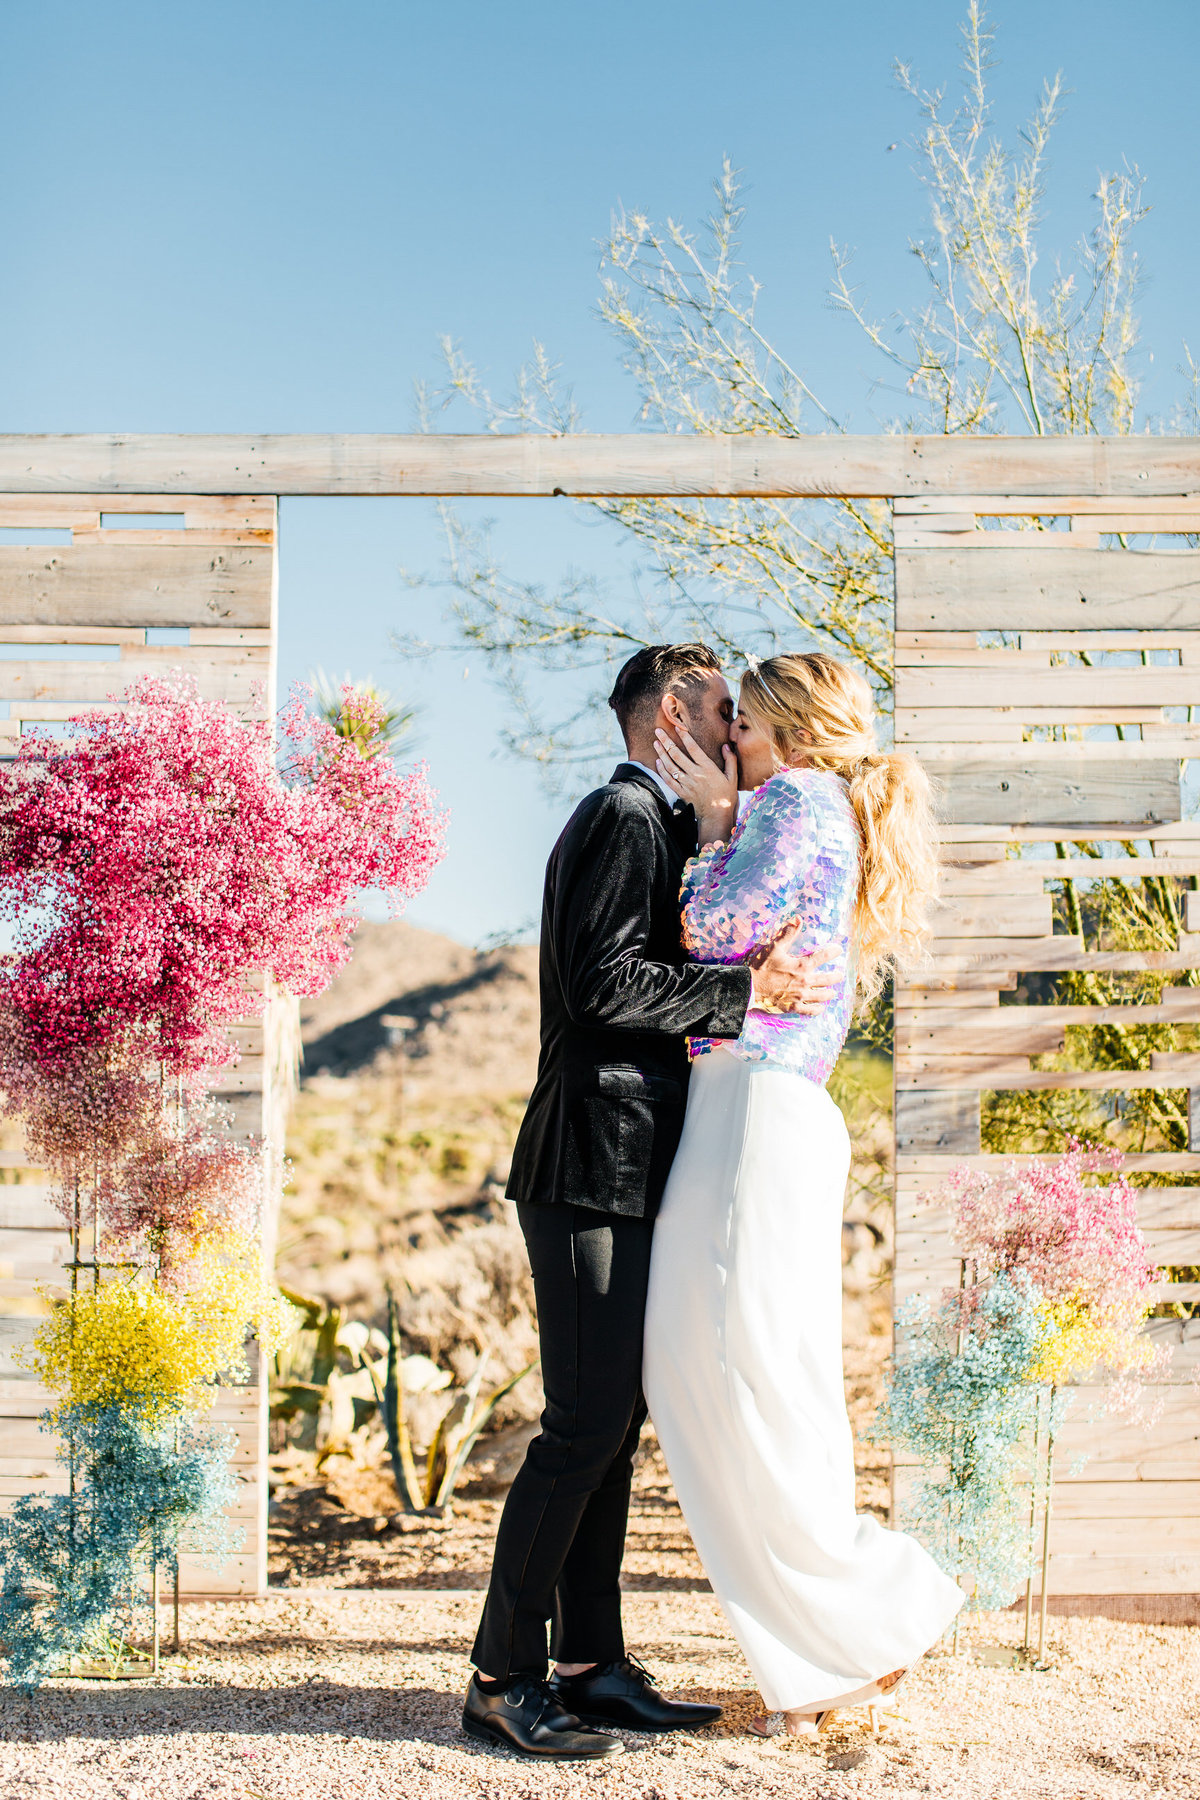 colorful-joshua-tree-elopement-inspiration-joshua-tree-wedding-photographer-palm-springs-wedding-photographer-erin-marton-photography-21